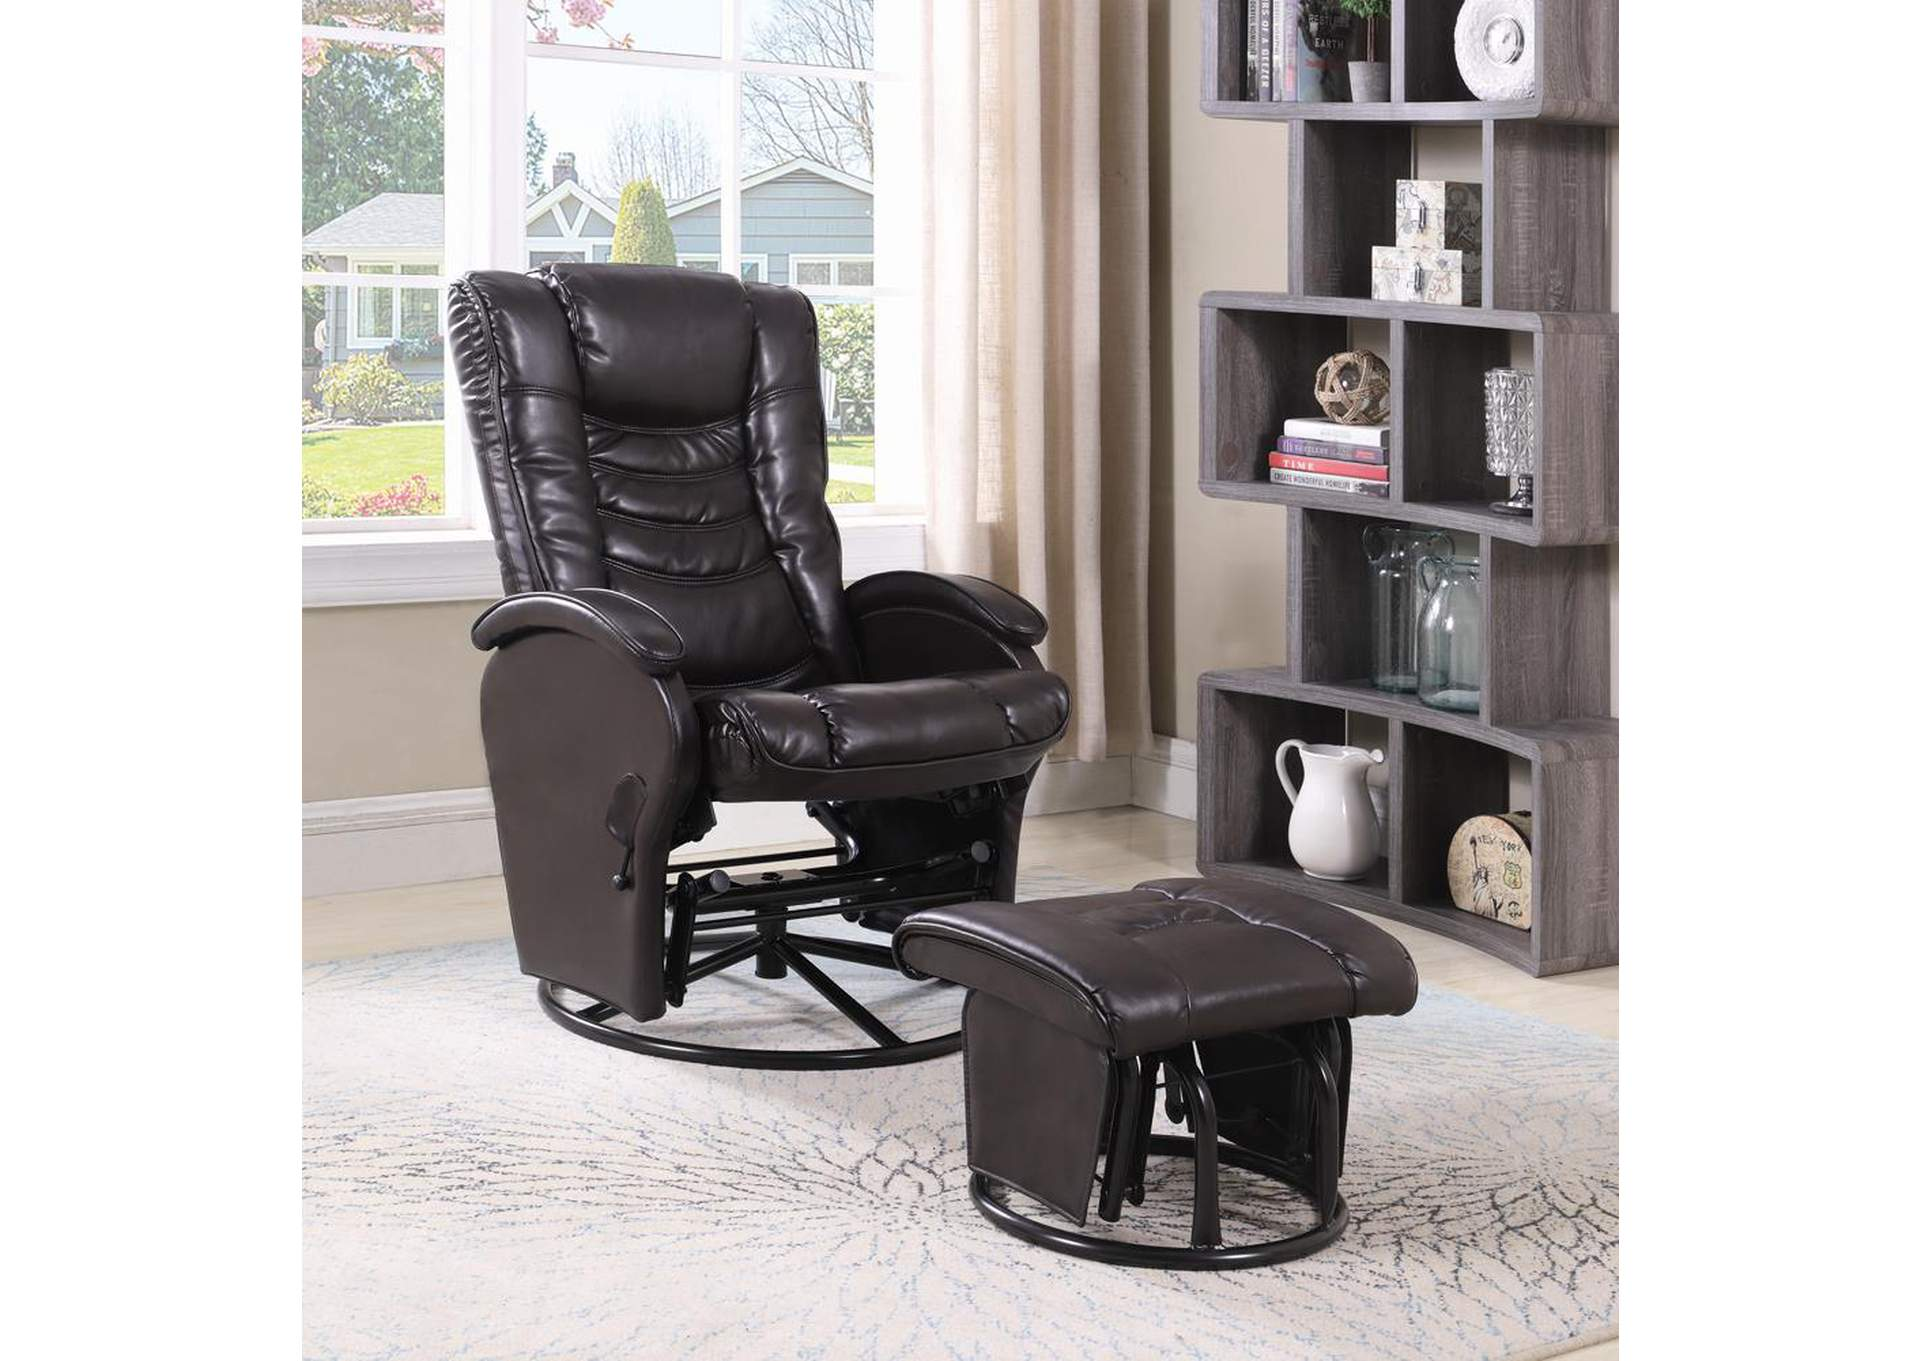 Brown Deluxe Glider w/ Ottoman,ABF Coaster Furniture